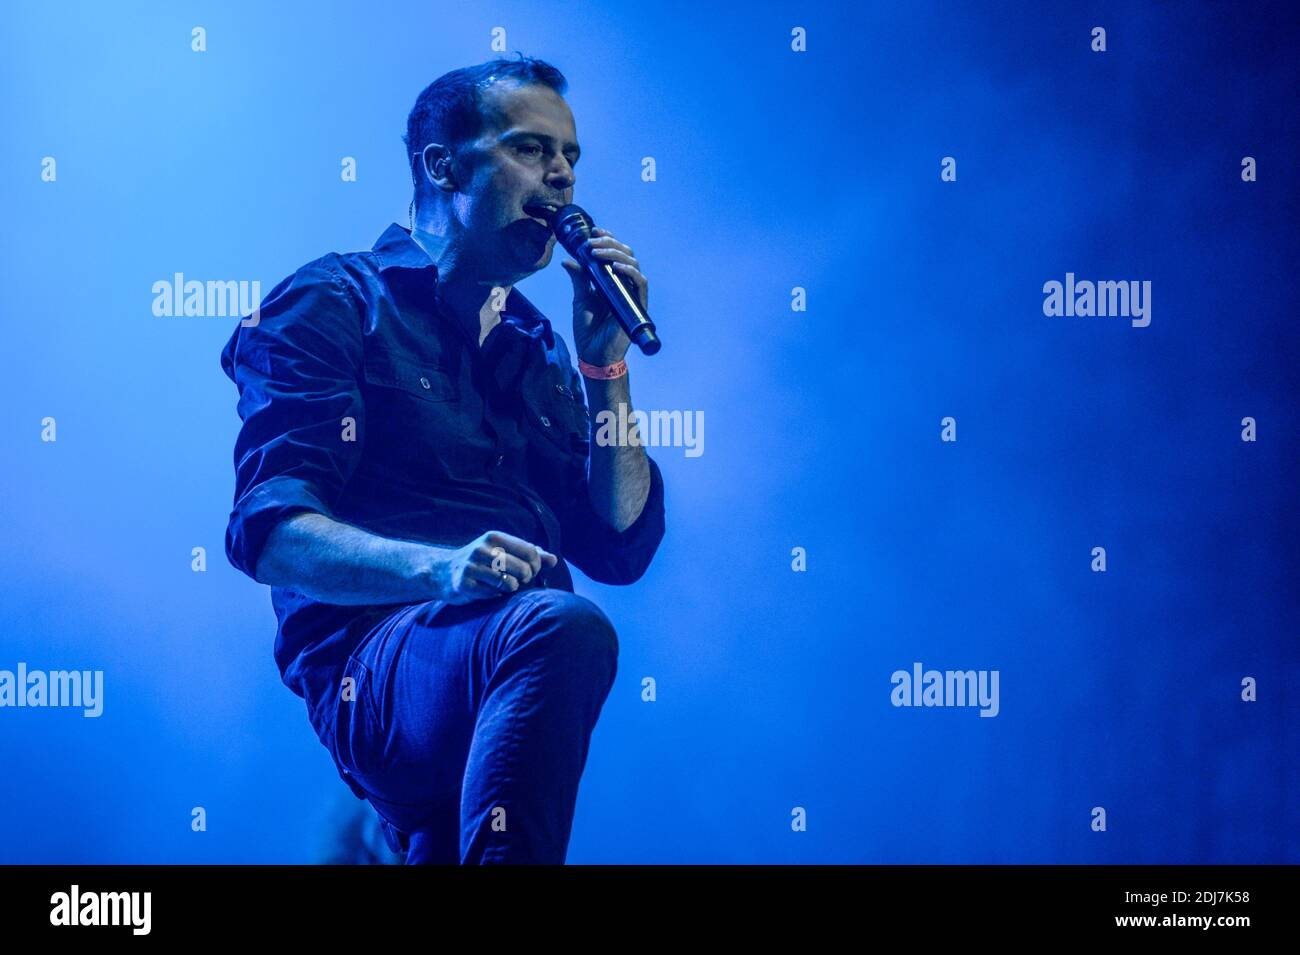 Blind Guardian High Resolution Stock Photography And Images Alamy